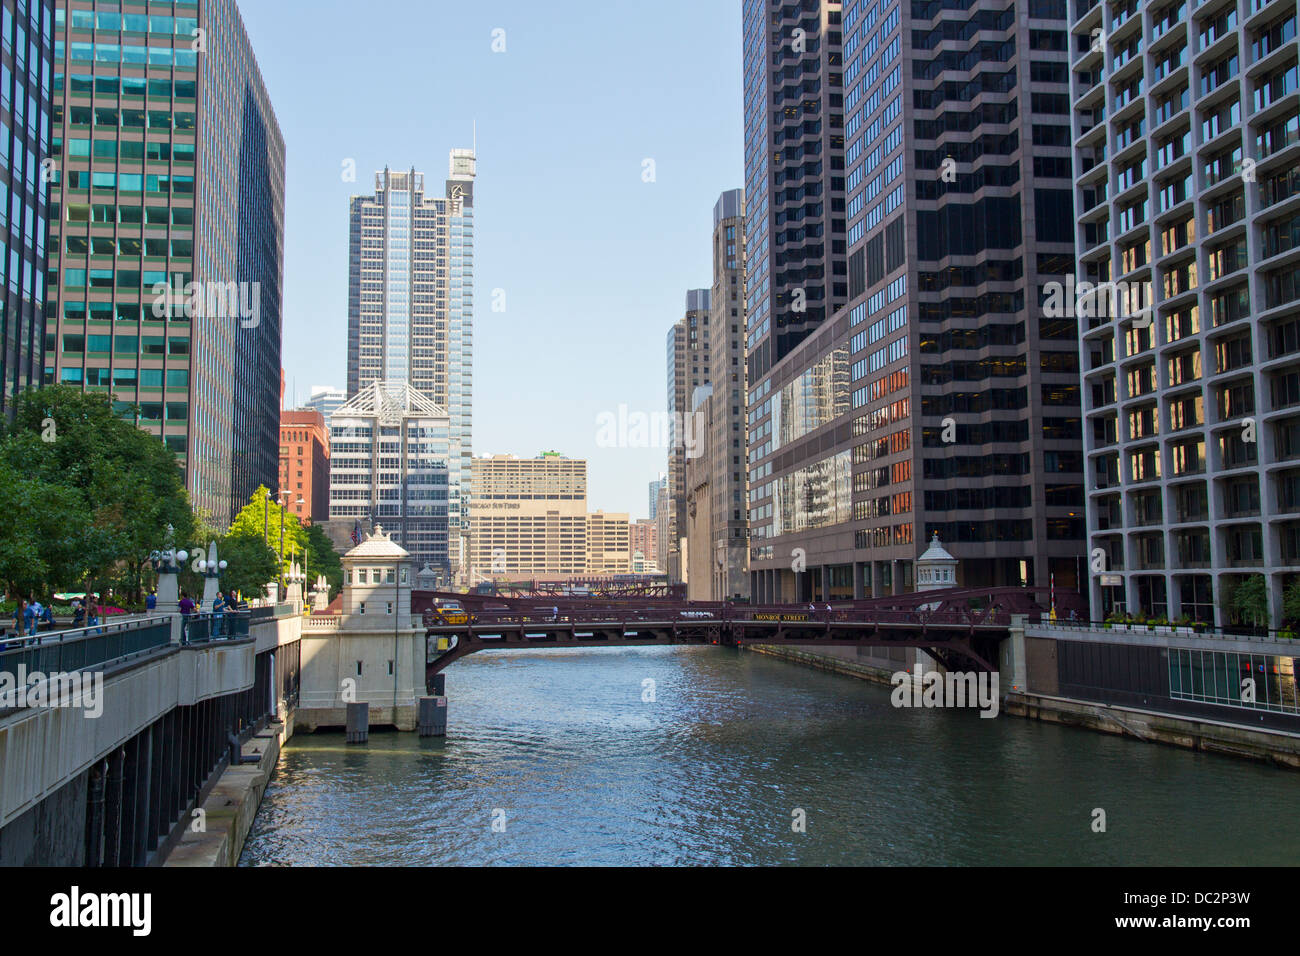 The Chicago River in downtown Chicago, Illinois, USA Stock Photo